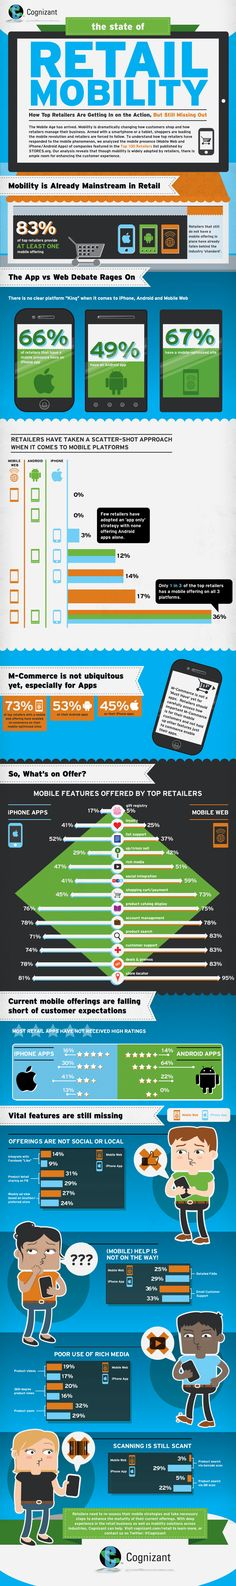 And there is an important message for retailers in this analysis. Though retailers offer a slew of useful features, mobile offerings are not meeting customer expectations. That's bad news for retailers that are spending money, time and resources in response to the incredible growth in consumer mobile devices. That's bad news if you're losing sales to Amazon. Mobile Business, Business Technology, Information Graphics, Online Marketing, Digital Marketing, Marketing Mobile, Social Media Marketing, Mobile Advertising, Marketing Ideas